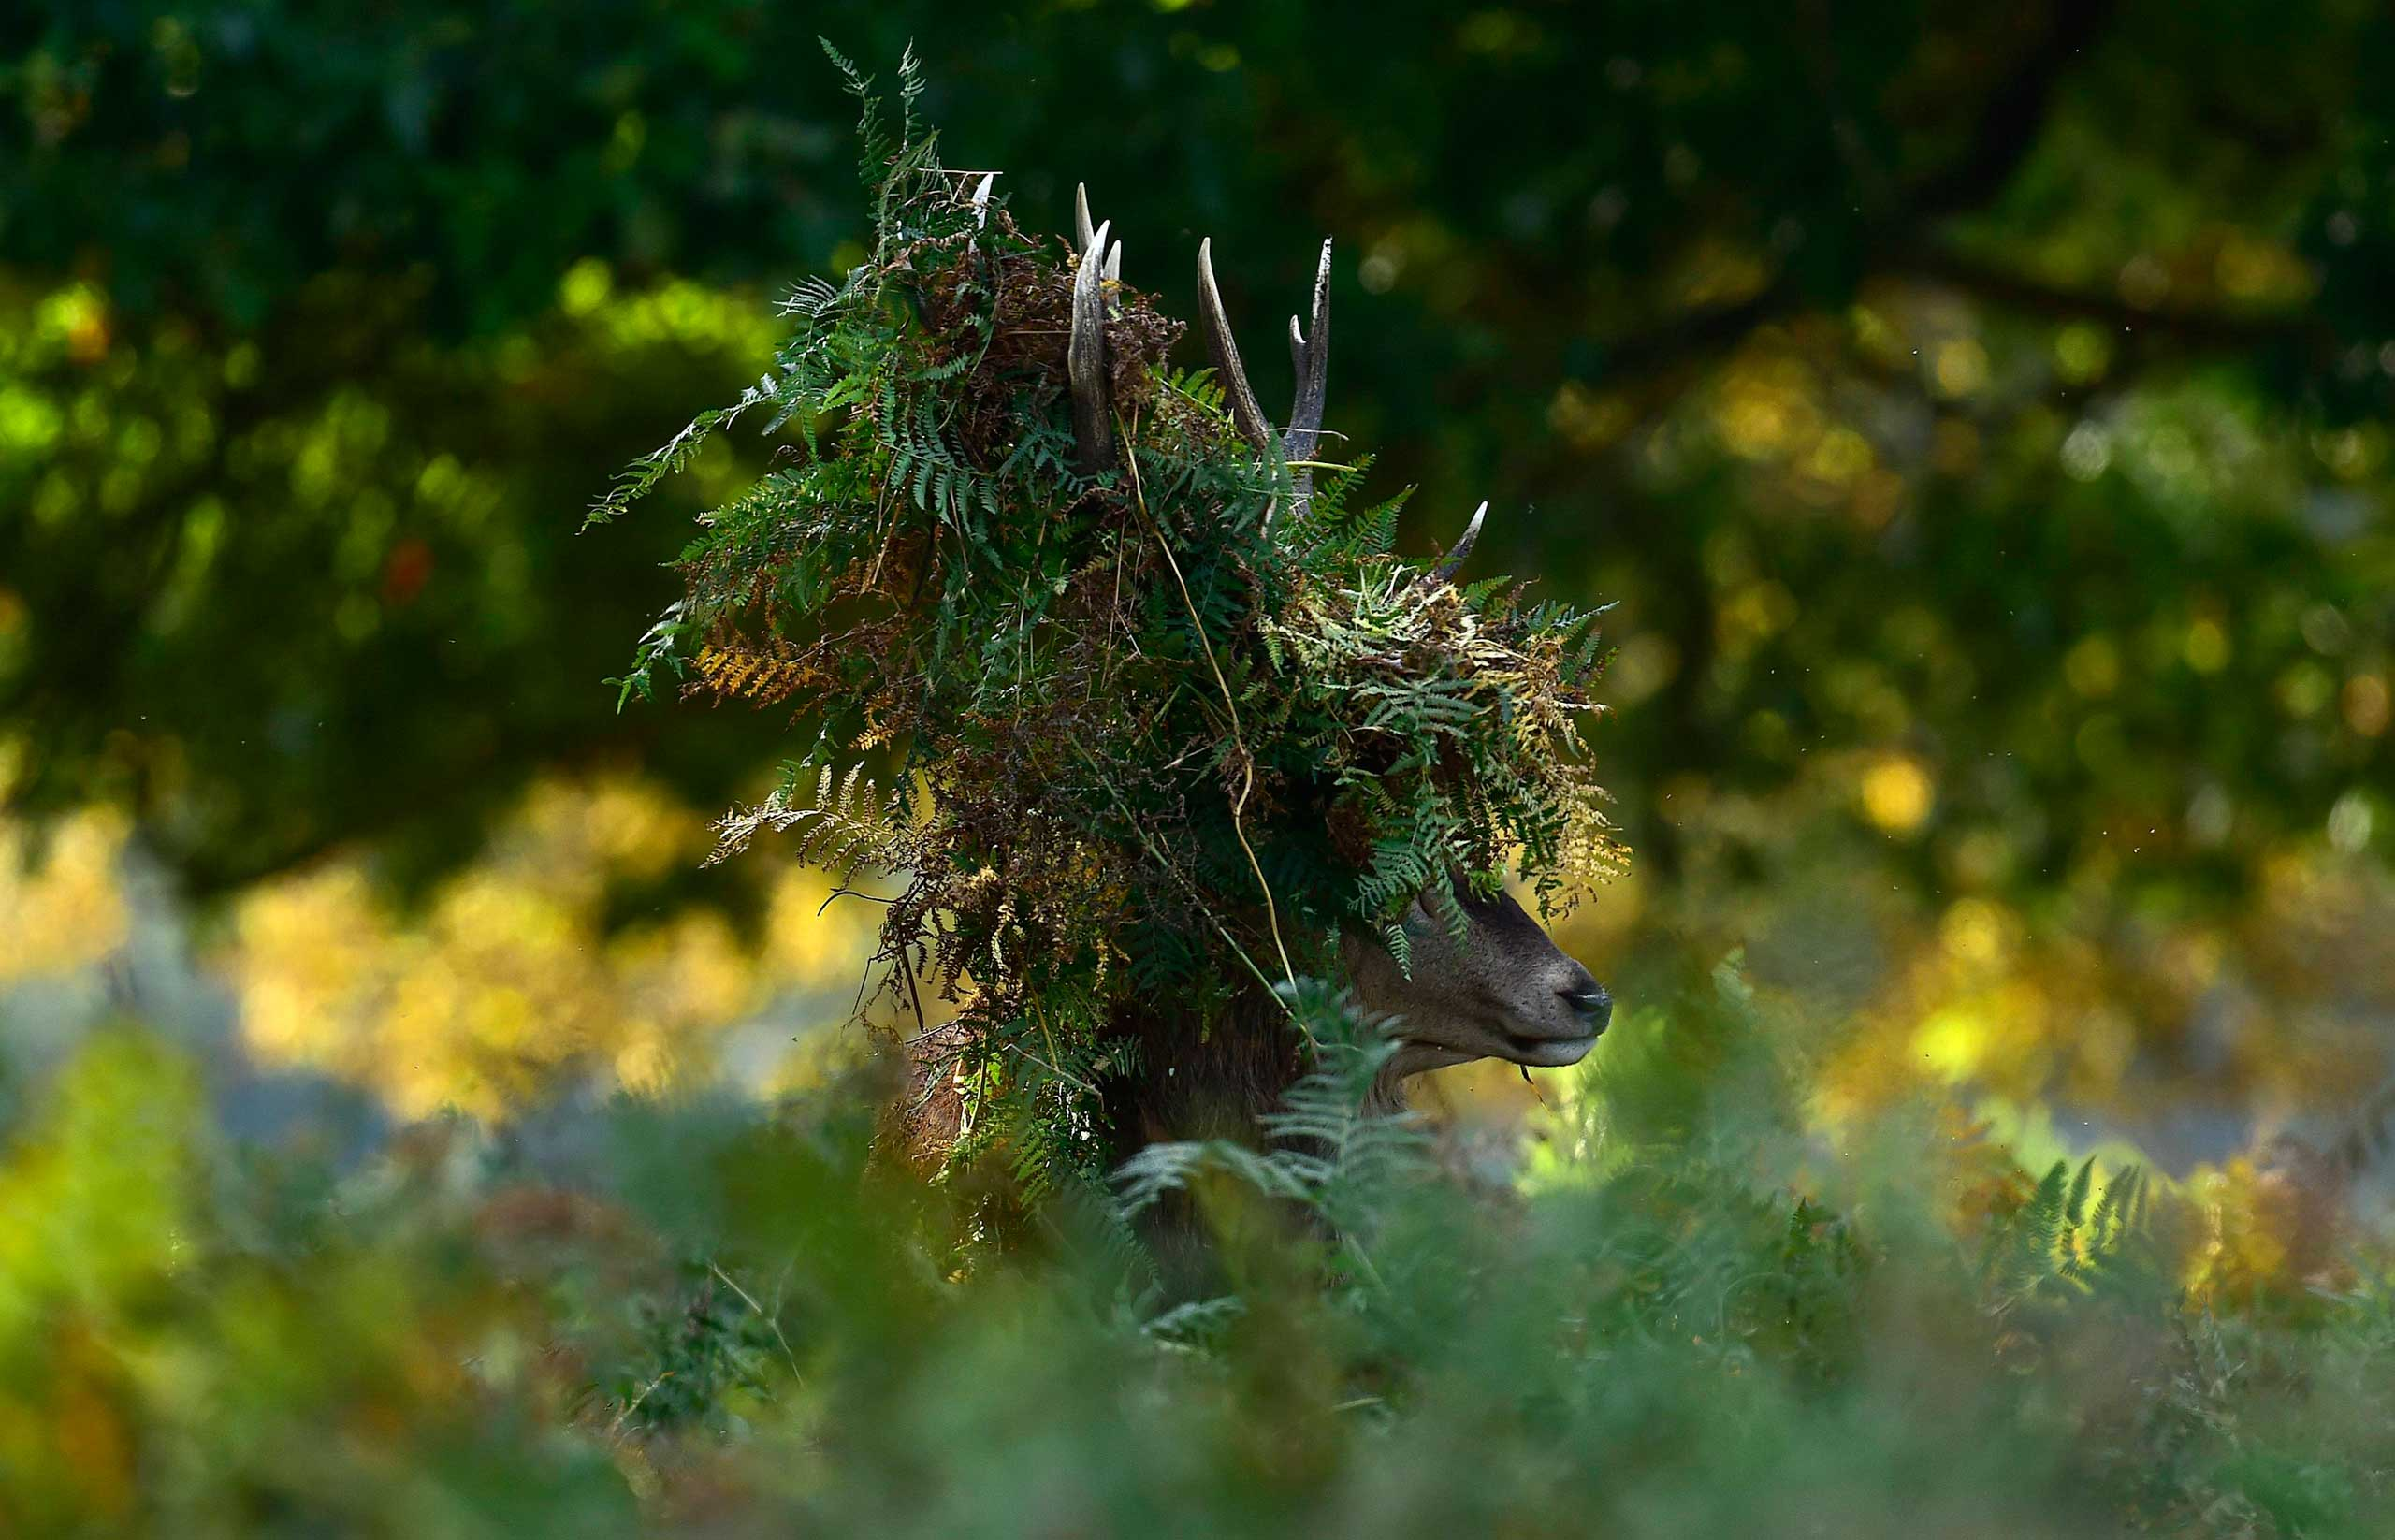 Oct. 3, 2014. A male red deer with antlers covered in bracken, walks through undergrowth in Richmond Park in south west London. Over 600 red and fallow deer roam in the largest of London's Royal Parks, and have their numbers managed in an annual cull each November and February.